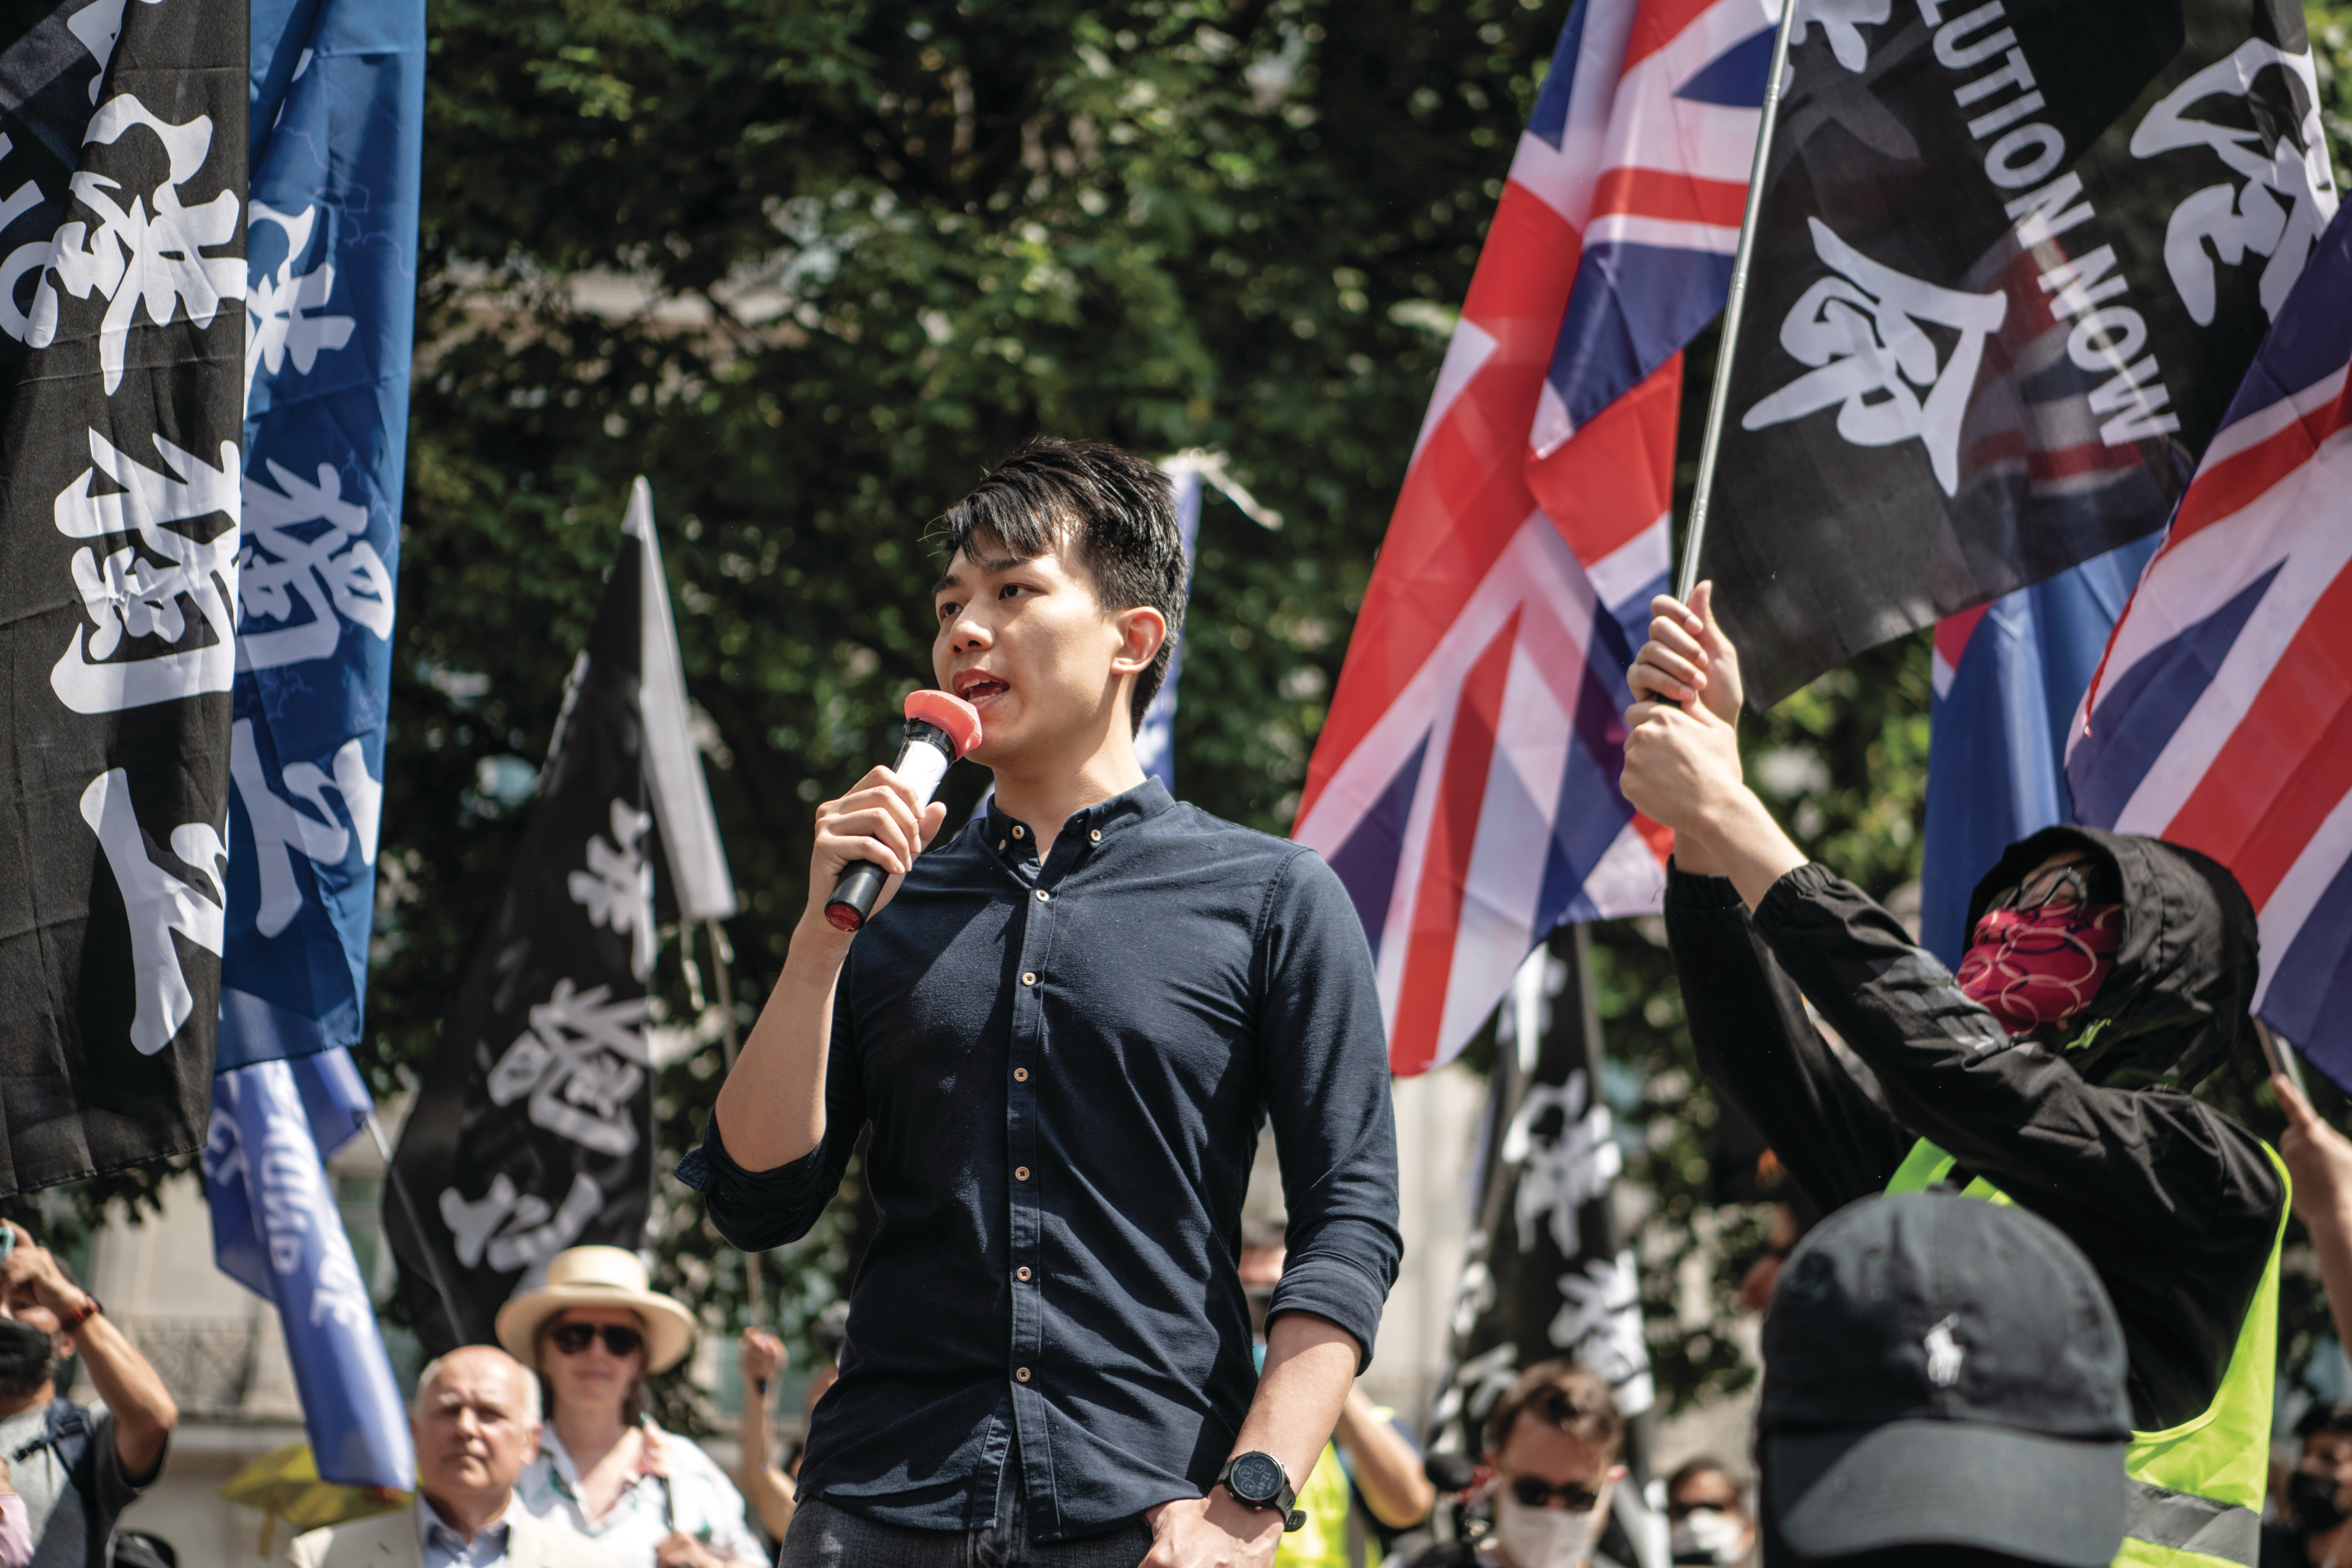 Activist Lau speaks at a rally for Hong Kong democracy in London on June 12, 2021 (Laurel Chor/Getty Images)